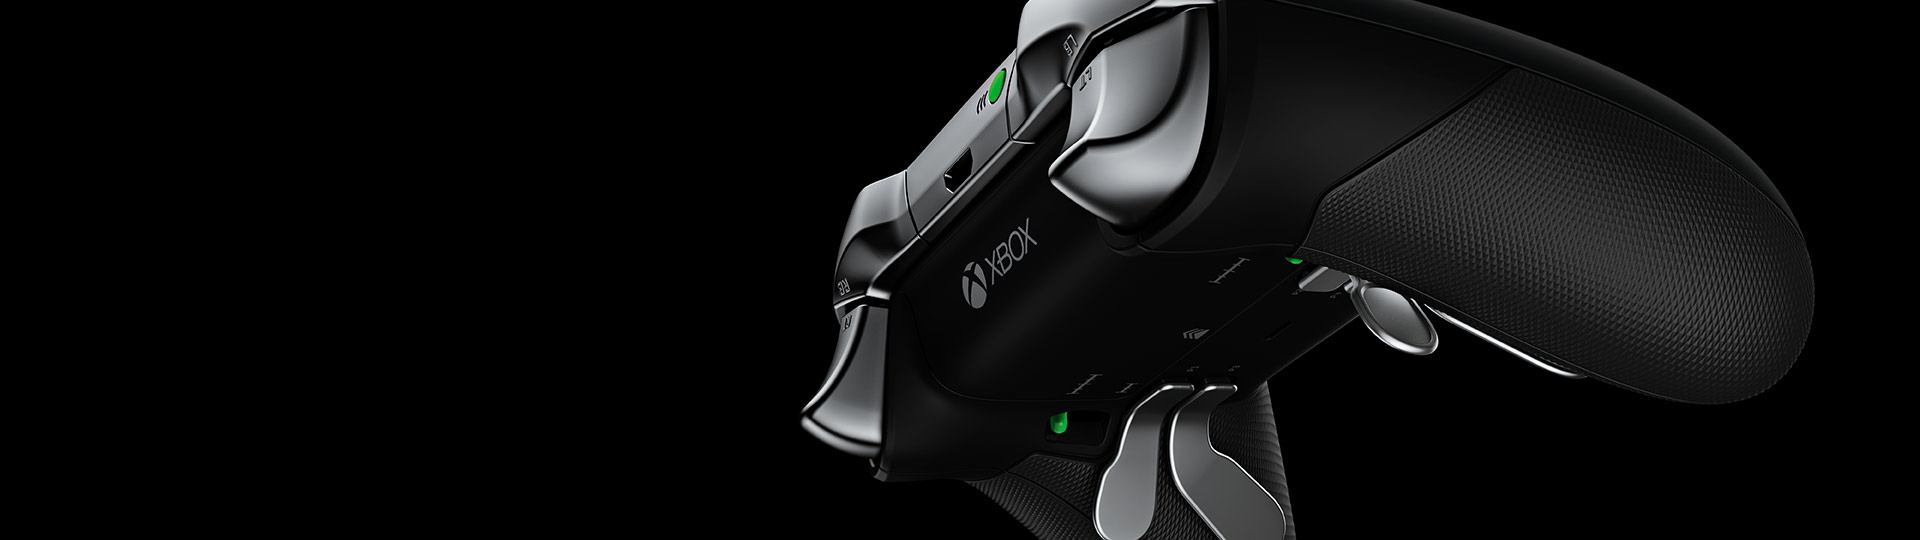 hight resolution of left angled view of xbox elite wireless controller